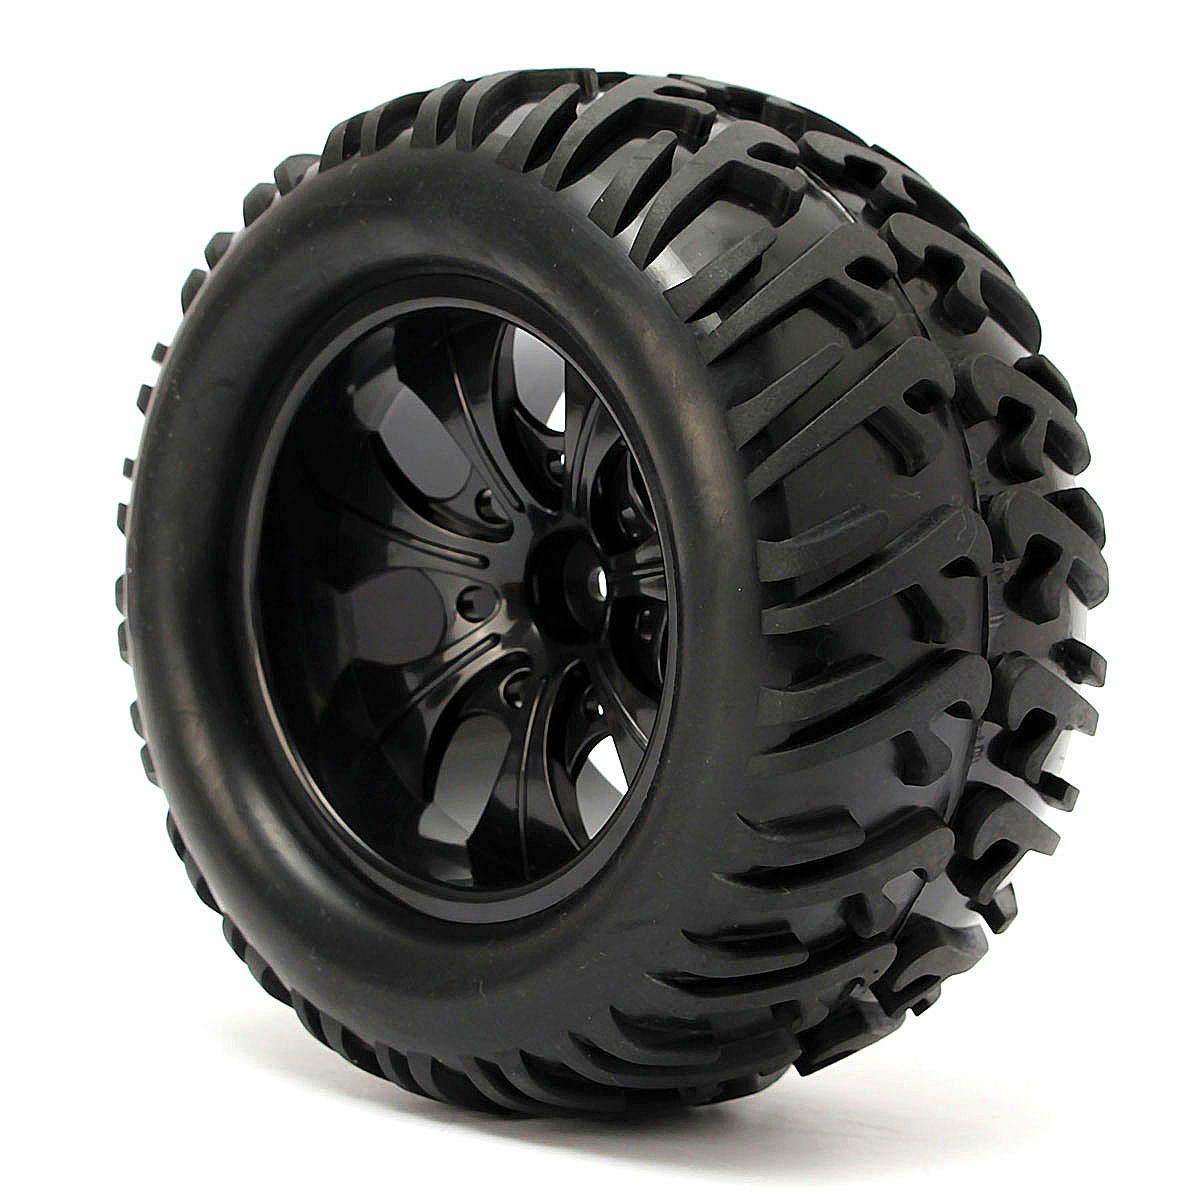 4PCS 12mm Racing Wheel Rim & Tires Redcat HSP 1:10 Monster truck RC On-Road Car Parts 12mm Hub 88005 стоимость